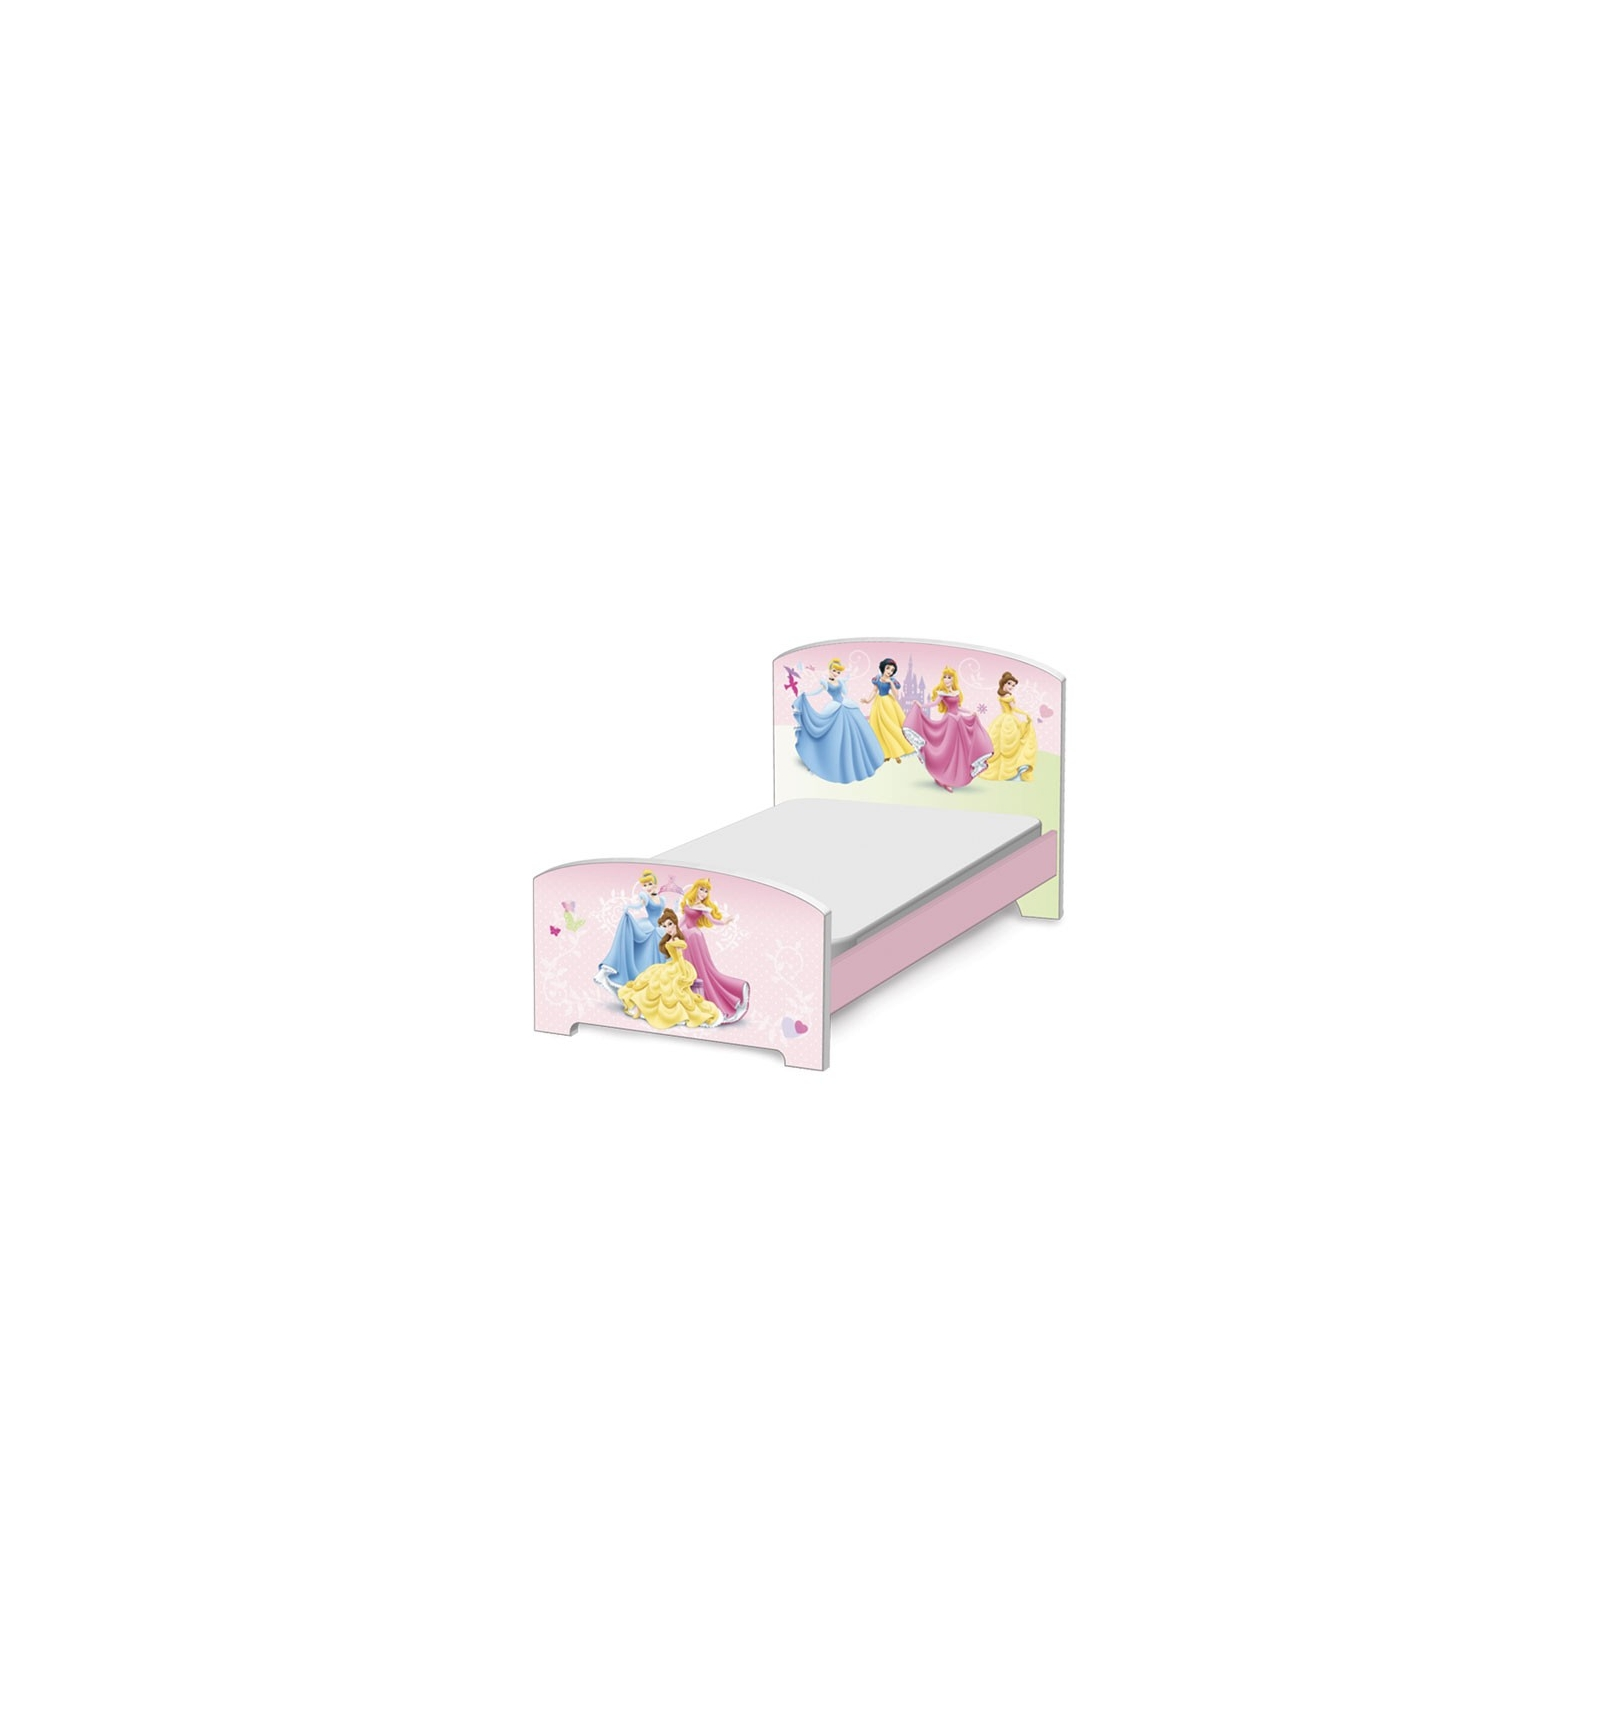 Muebles Disney Muebles De Princesas Disney Muebles De Princesas Disney